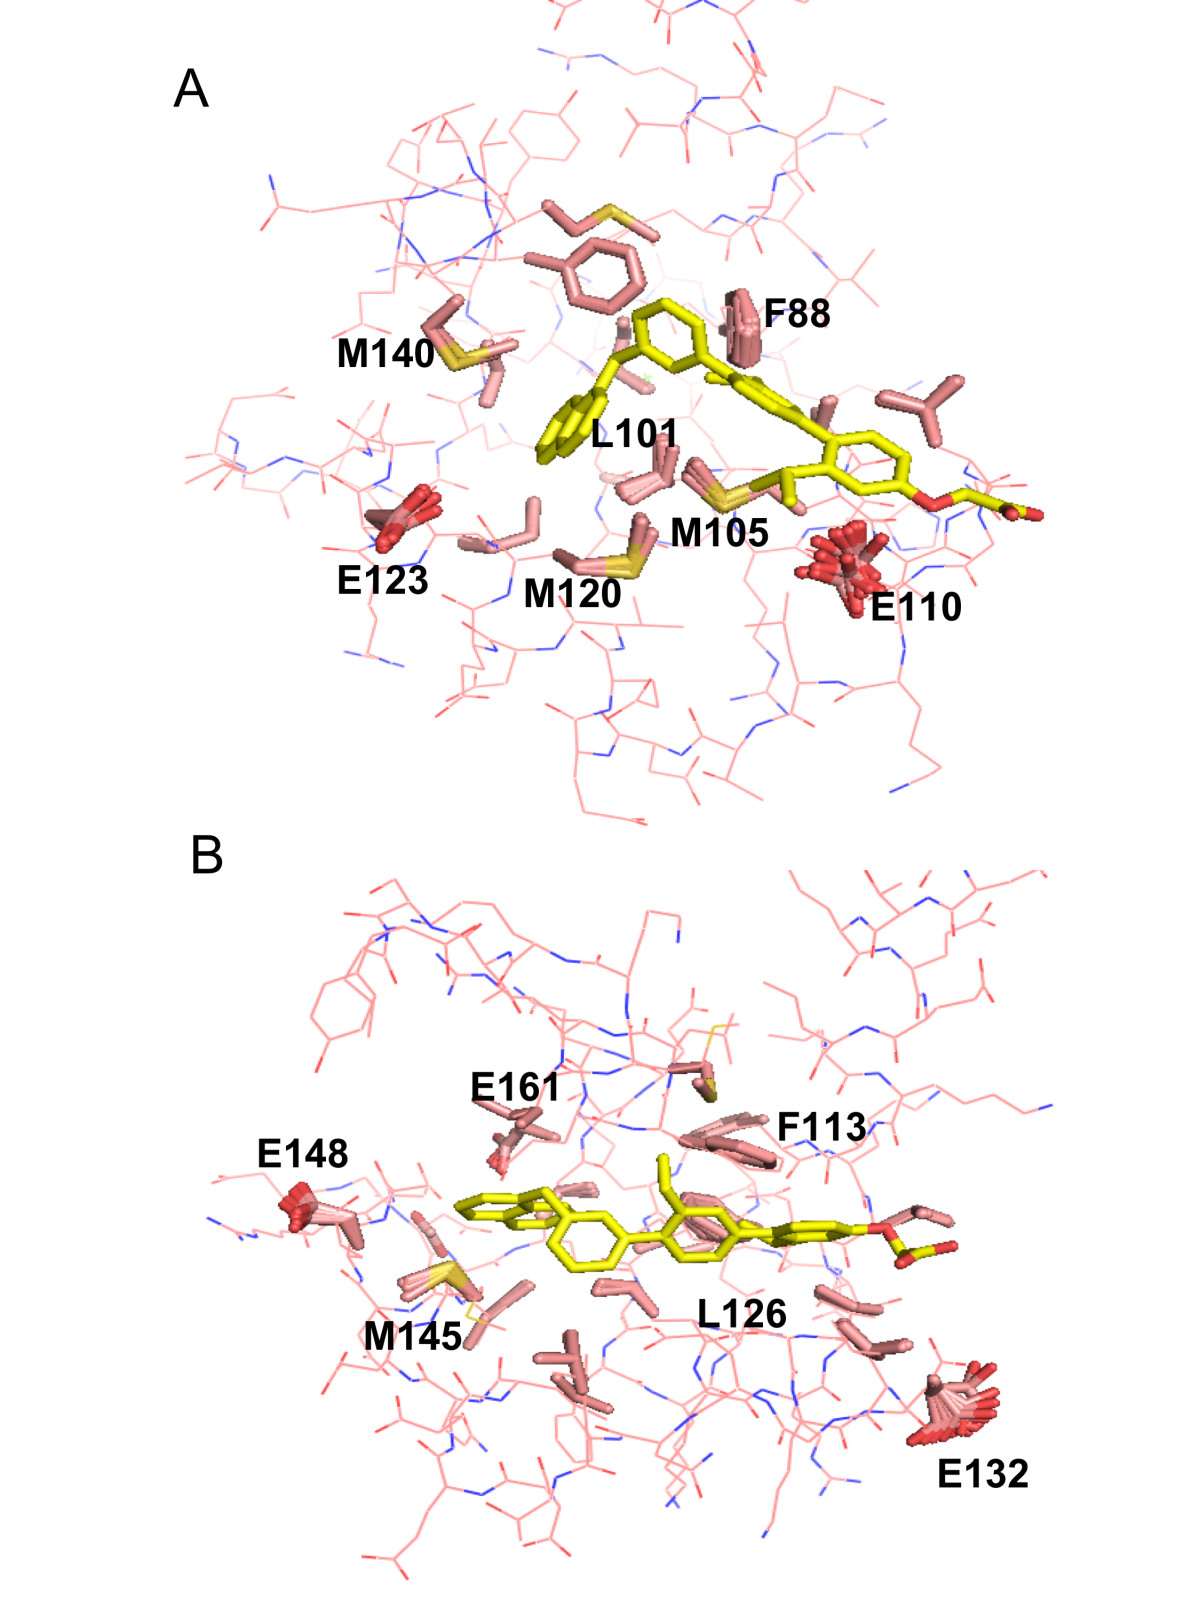 http://static-content.springer.com/image/art%3A10.1186%2F1472-6807-11-24/MediaObjects/12900_2011_Article_371_Fig7_HTML.jpg